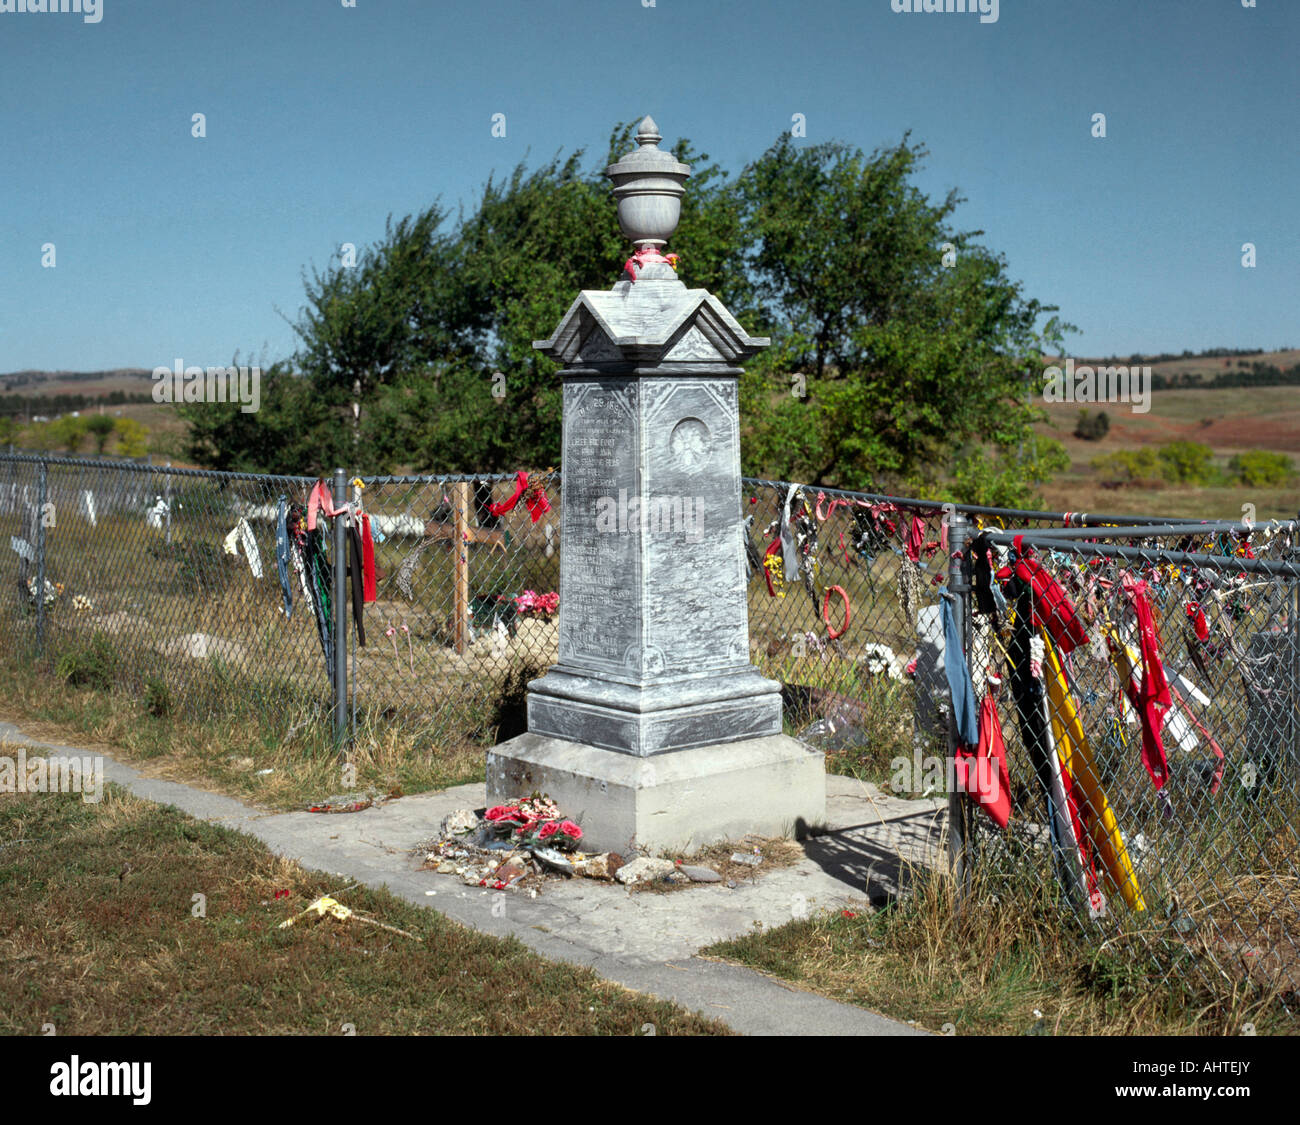 the battle at wounded knee The battle of wounded knee (wounded knee massacre) was fought in december 1890, as part of the sioux wars the 7th cavalry regiment arrived to disarm the lakota, which led to a struggle, in which .